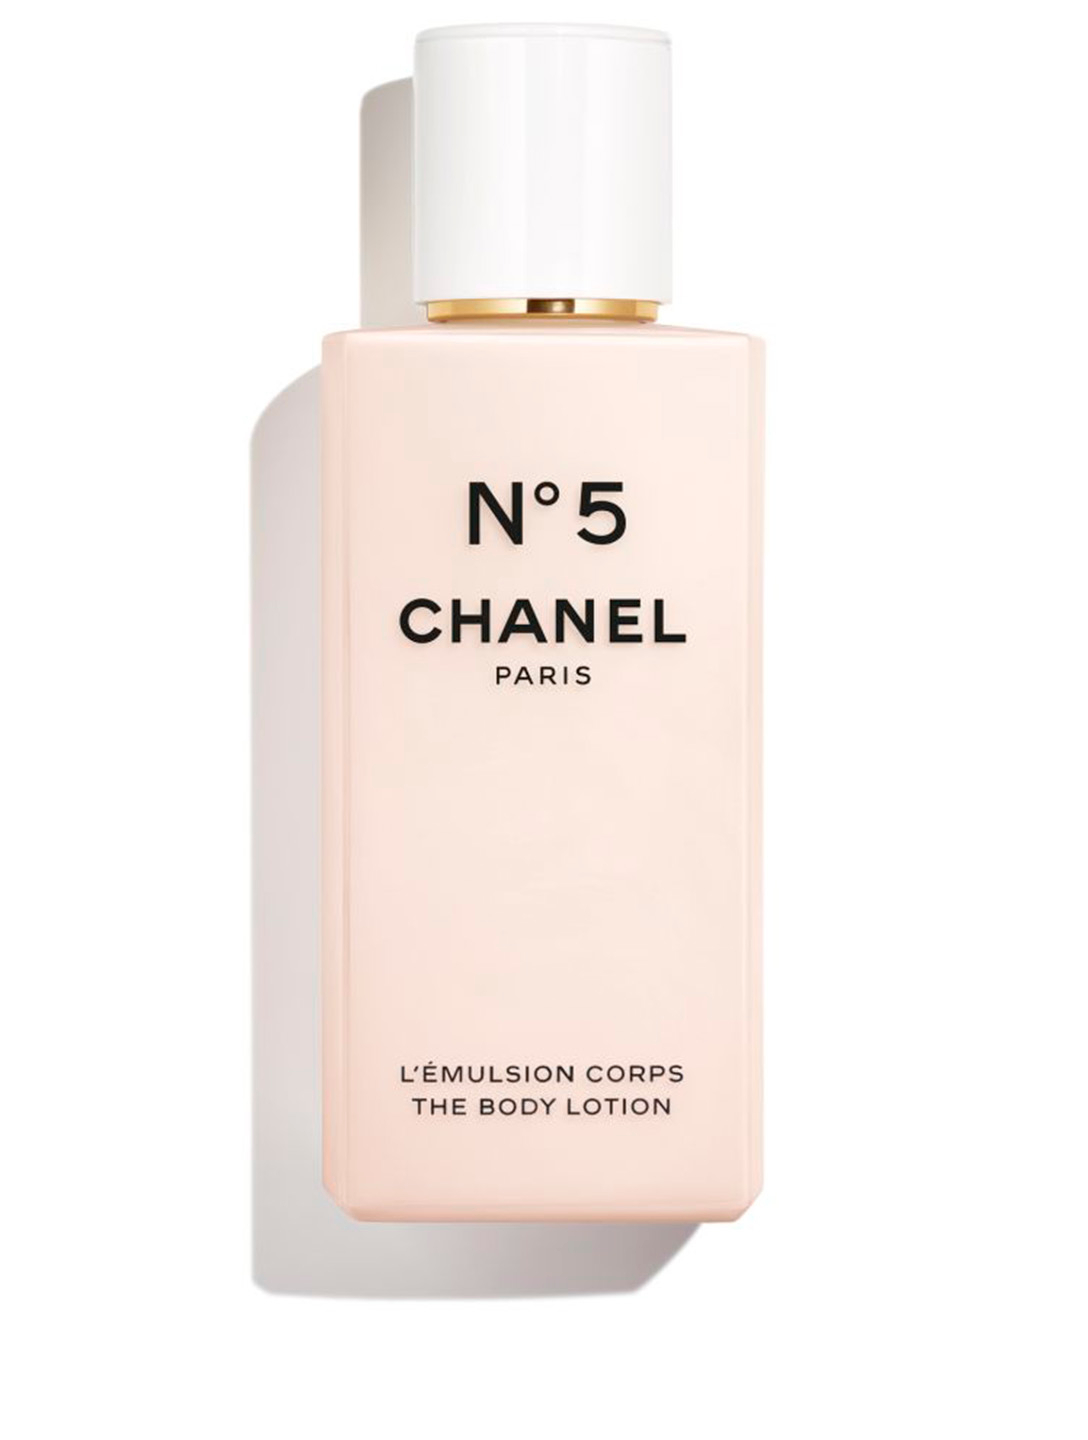 CHANEL L'émulsion corps N°5 CHANEL Incolore